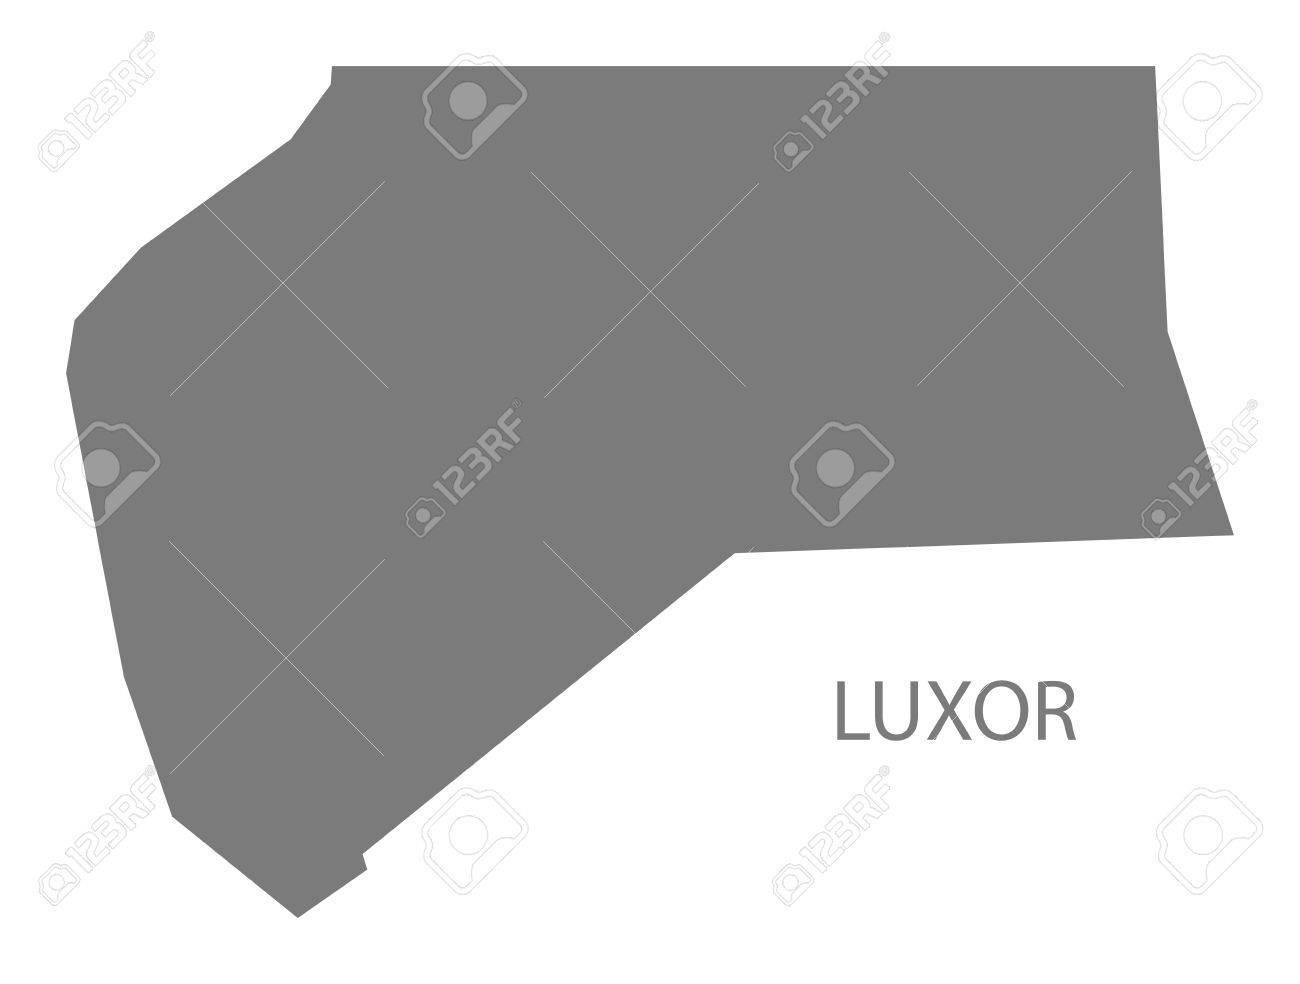 Luxor Egypt Map In Grey Royalty Free Cliparts Vectors And Stock